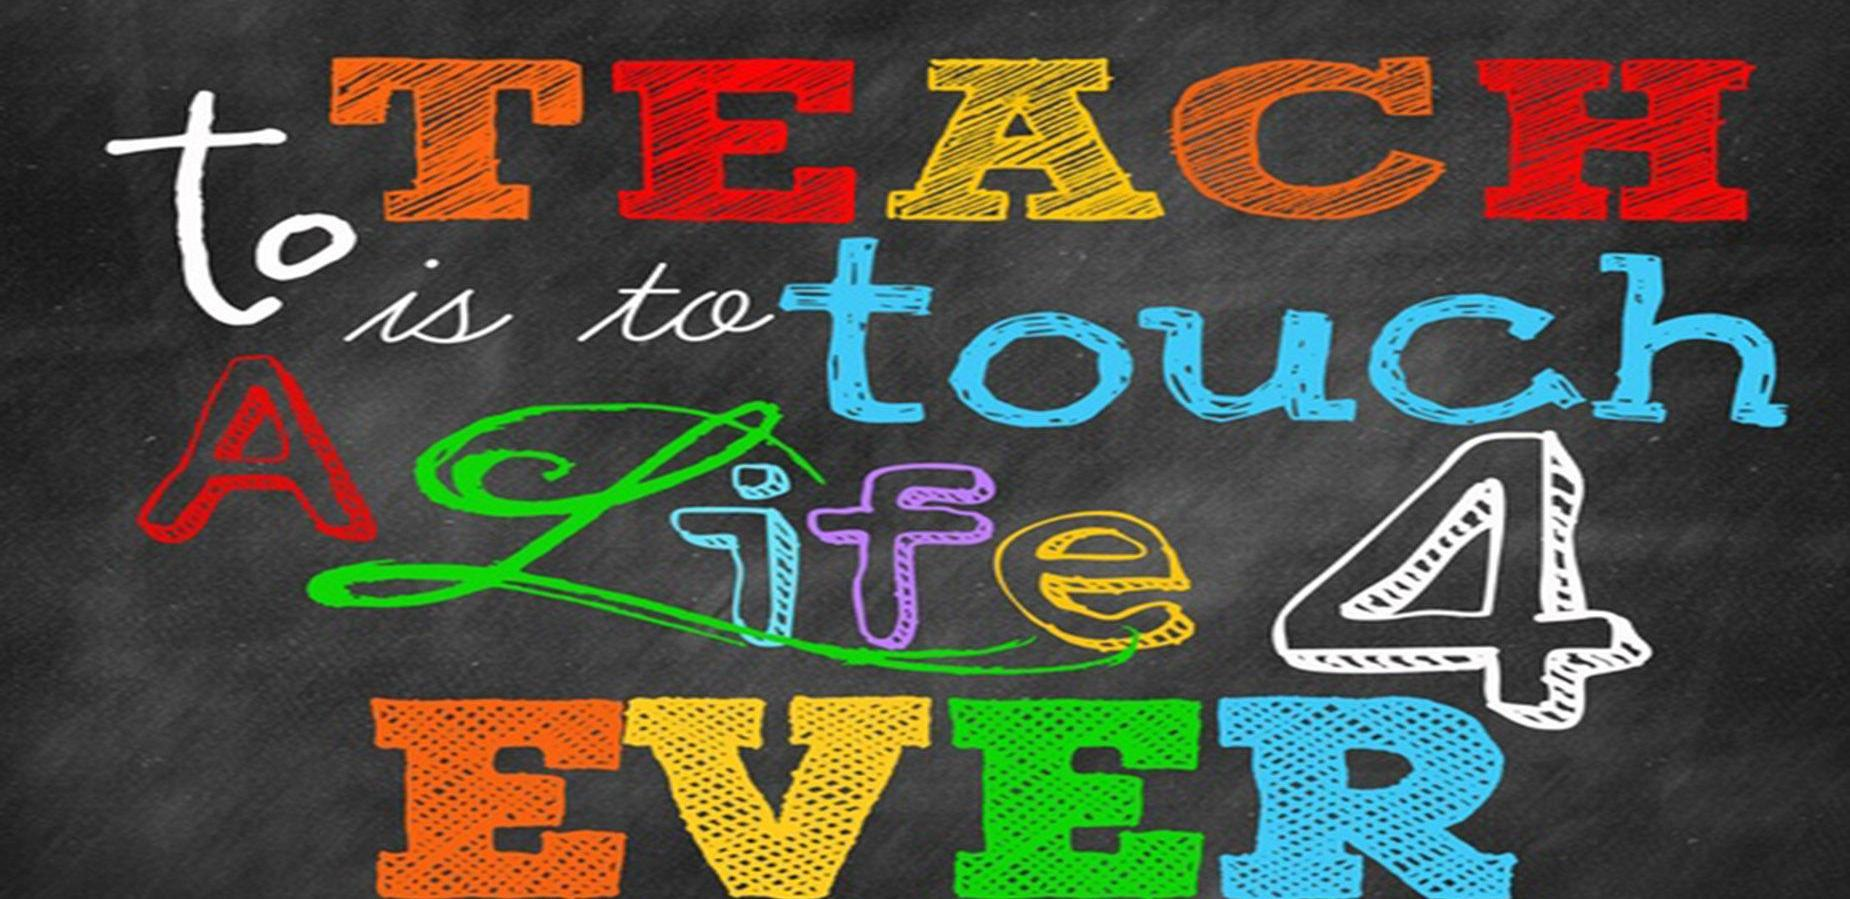 Words saying: To Teach is to touch a life